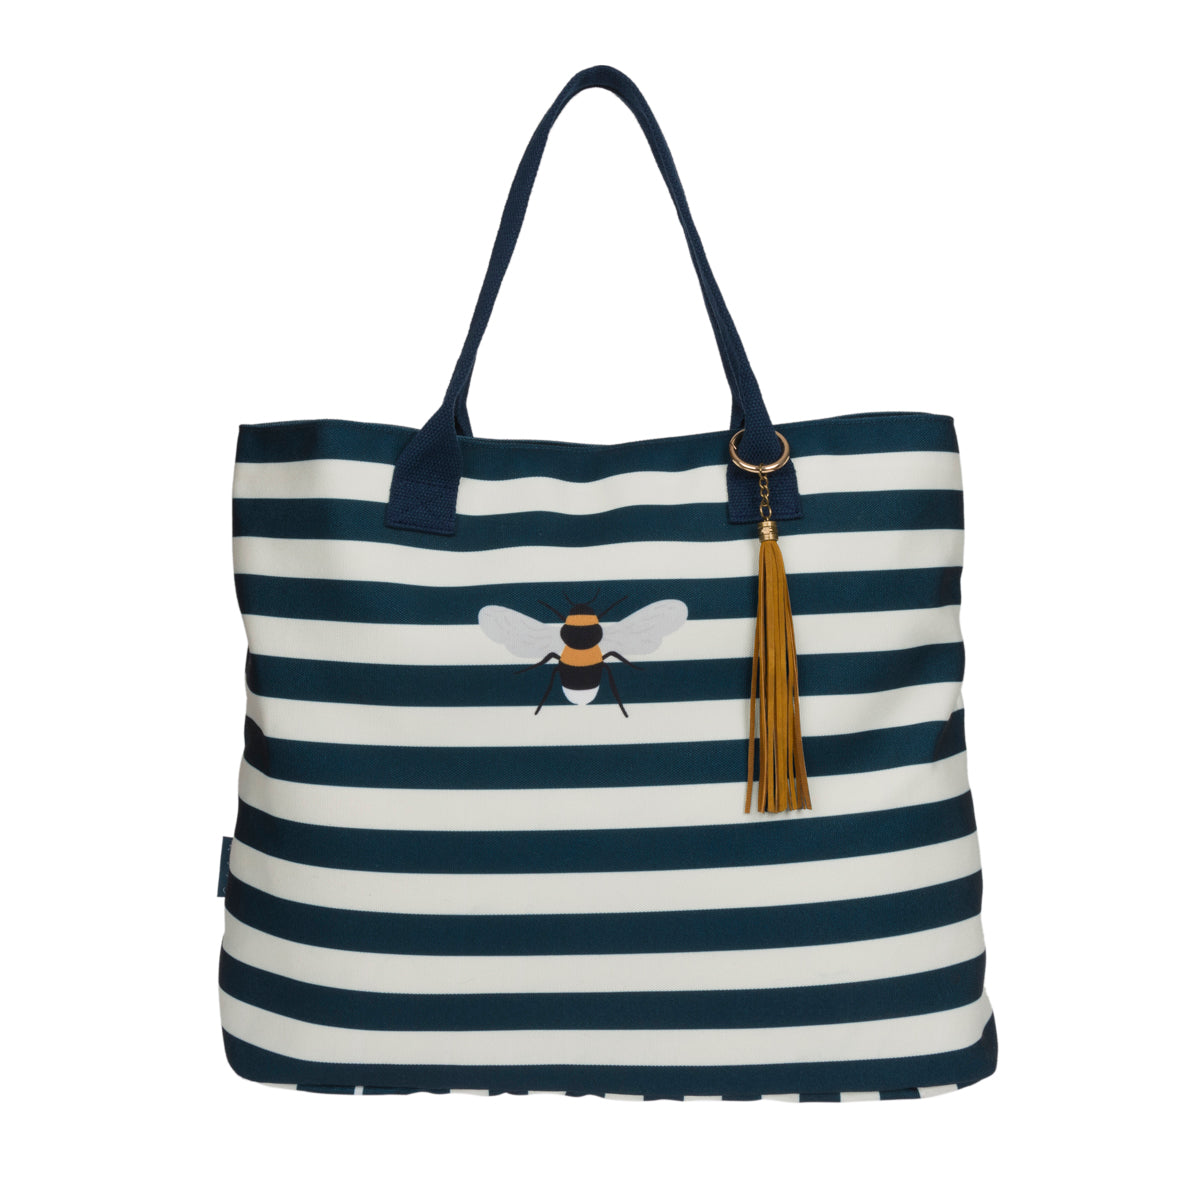 Sophie Allport tote bag, white and navy blue stripes with feature tassel and bee design.